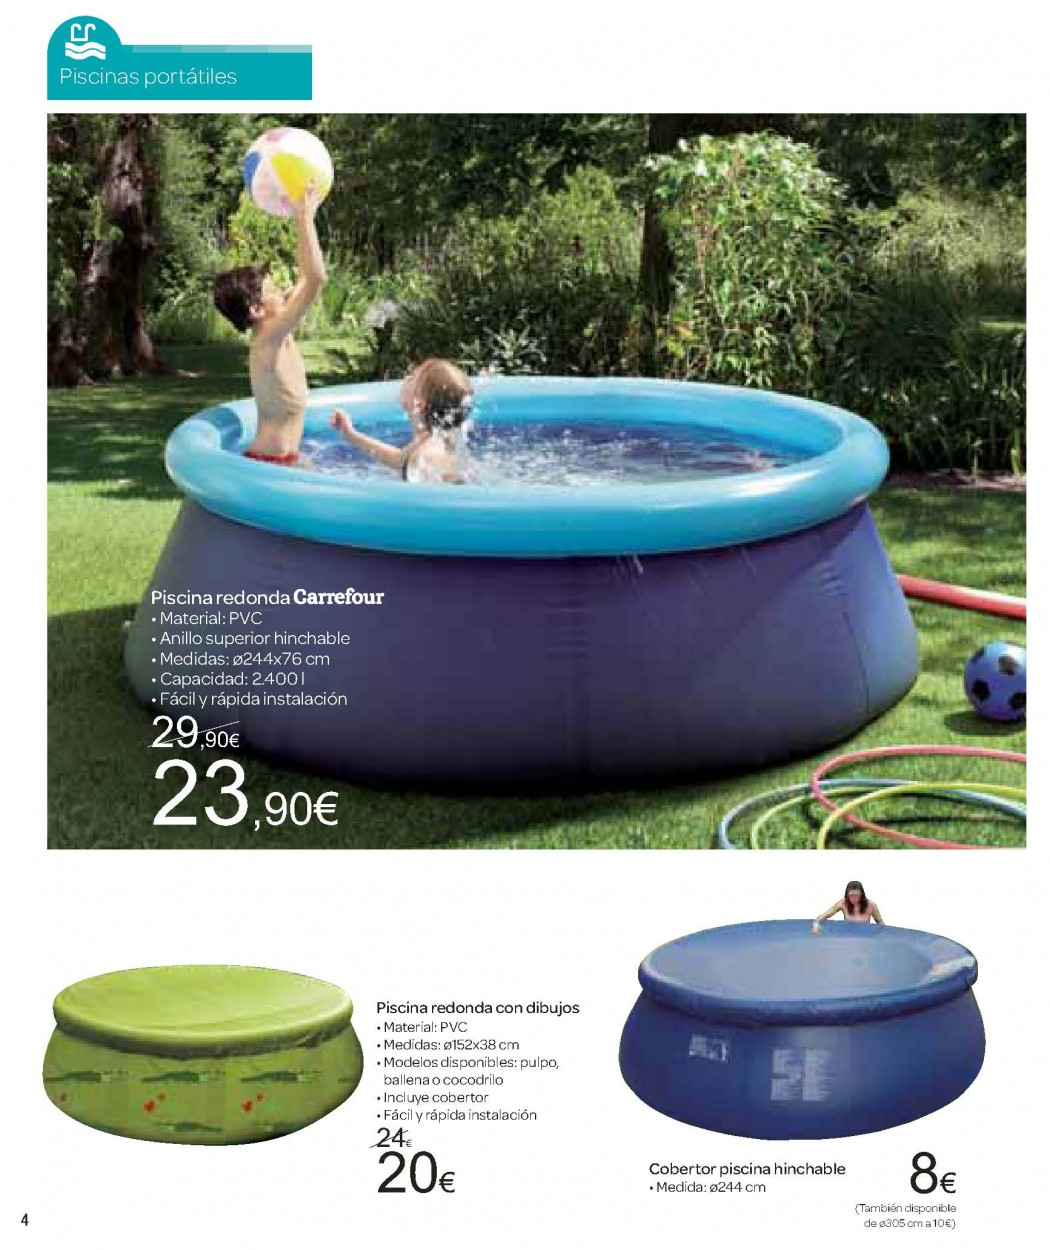 Ofertas carrefour for Piscinas carrefour